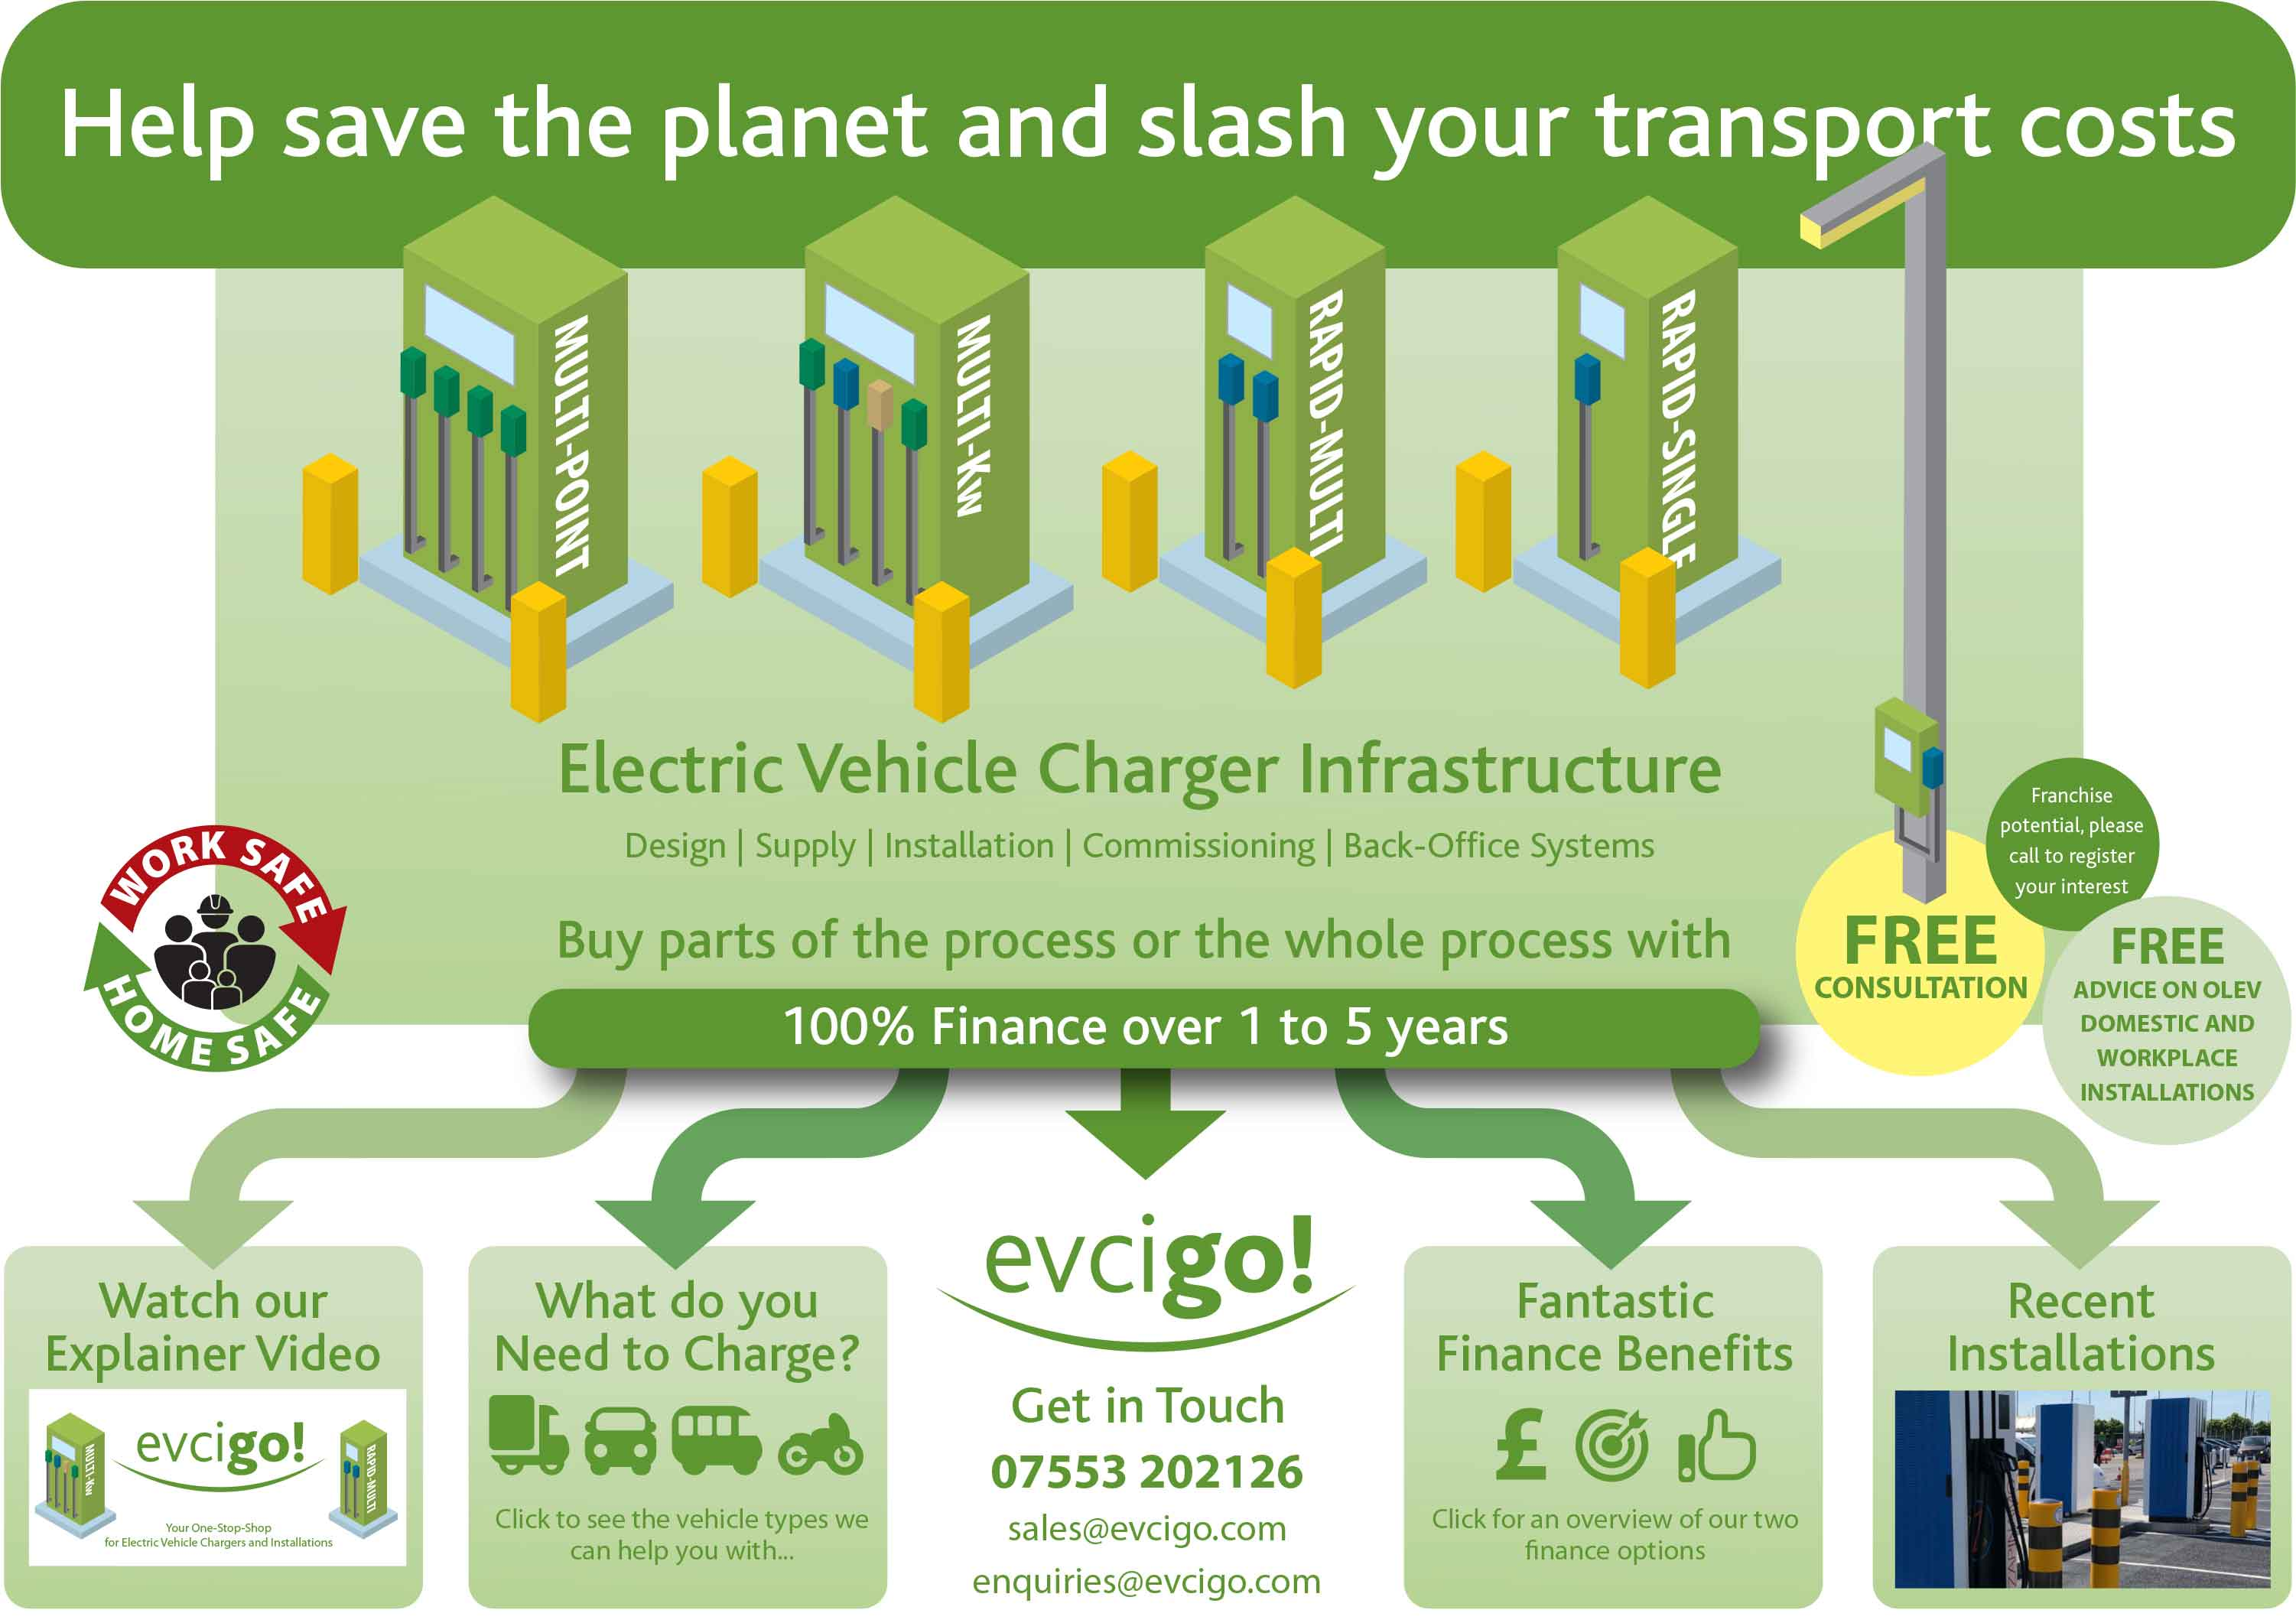 evcigo Electrical Vehicle Charger Installations